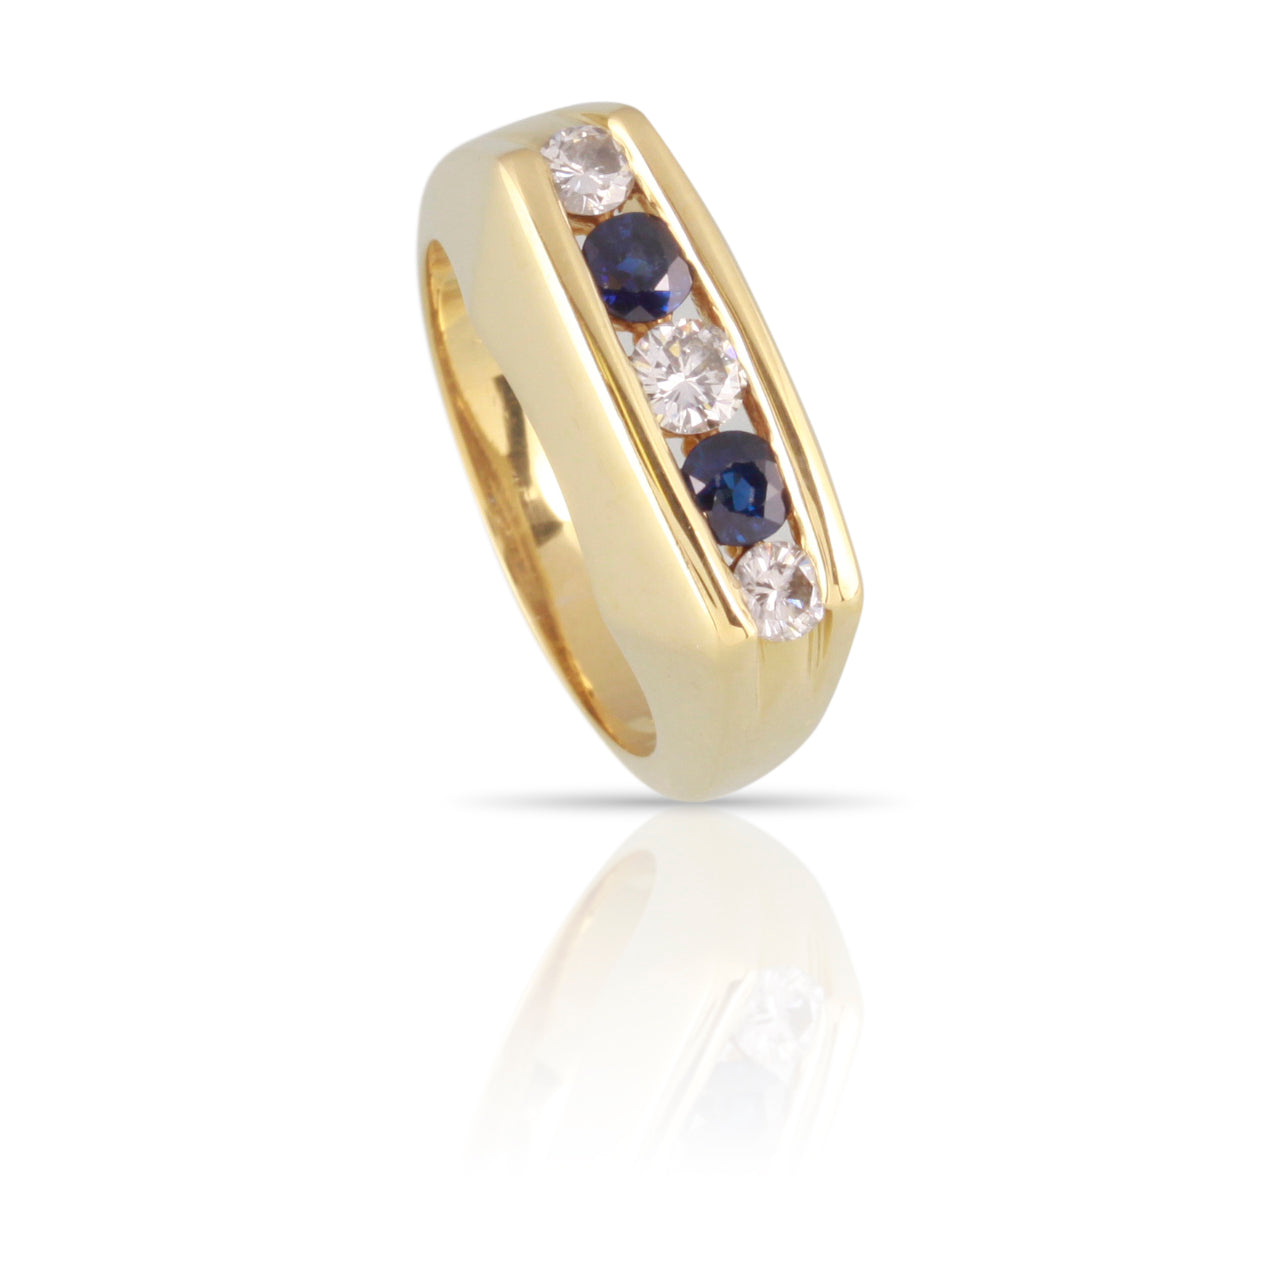 Kurt Wayne Sapphire and Diamond 5-Stone Ring | The Kurt